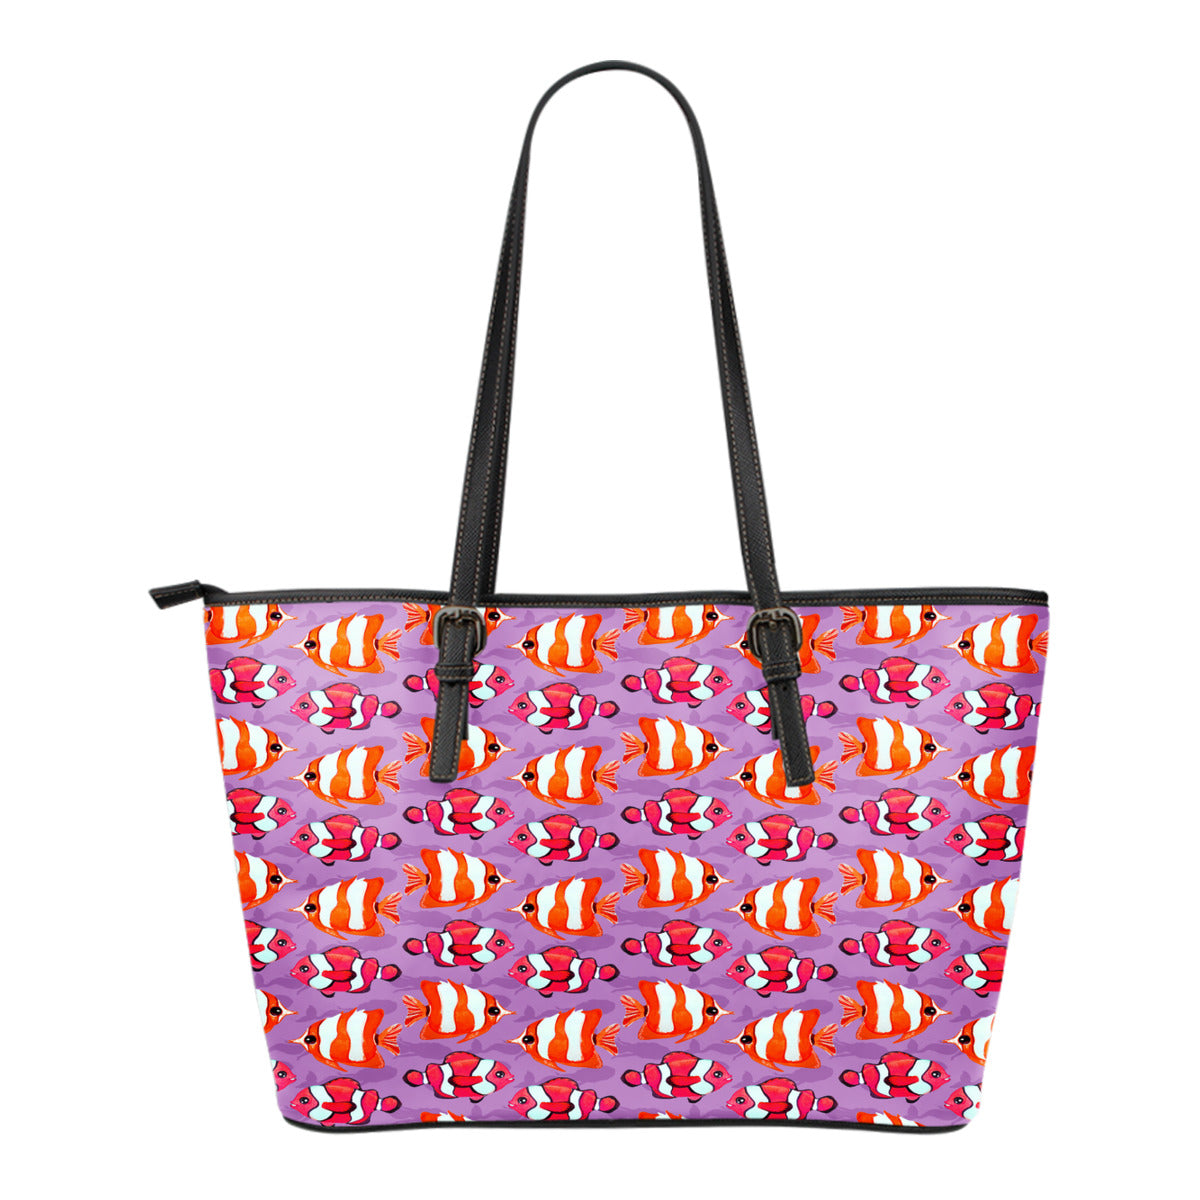 Mermaid Themed Design C2 Women Small Leather Tote Bag